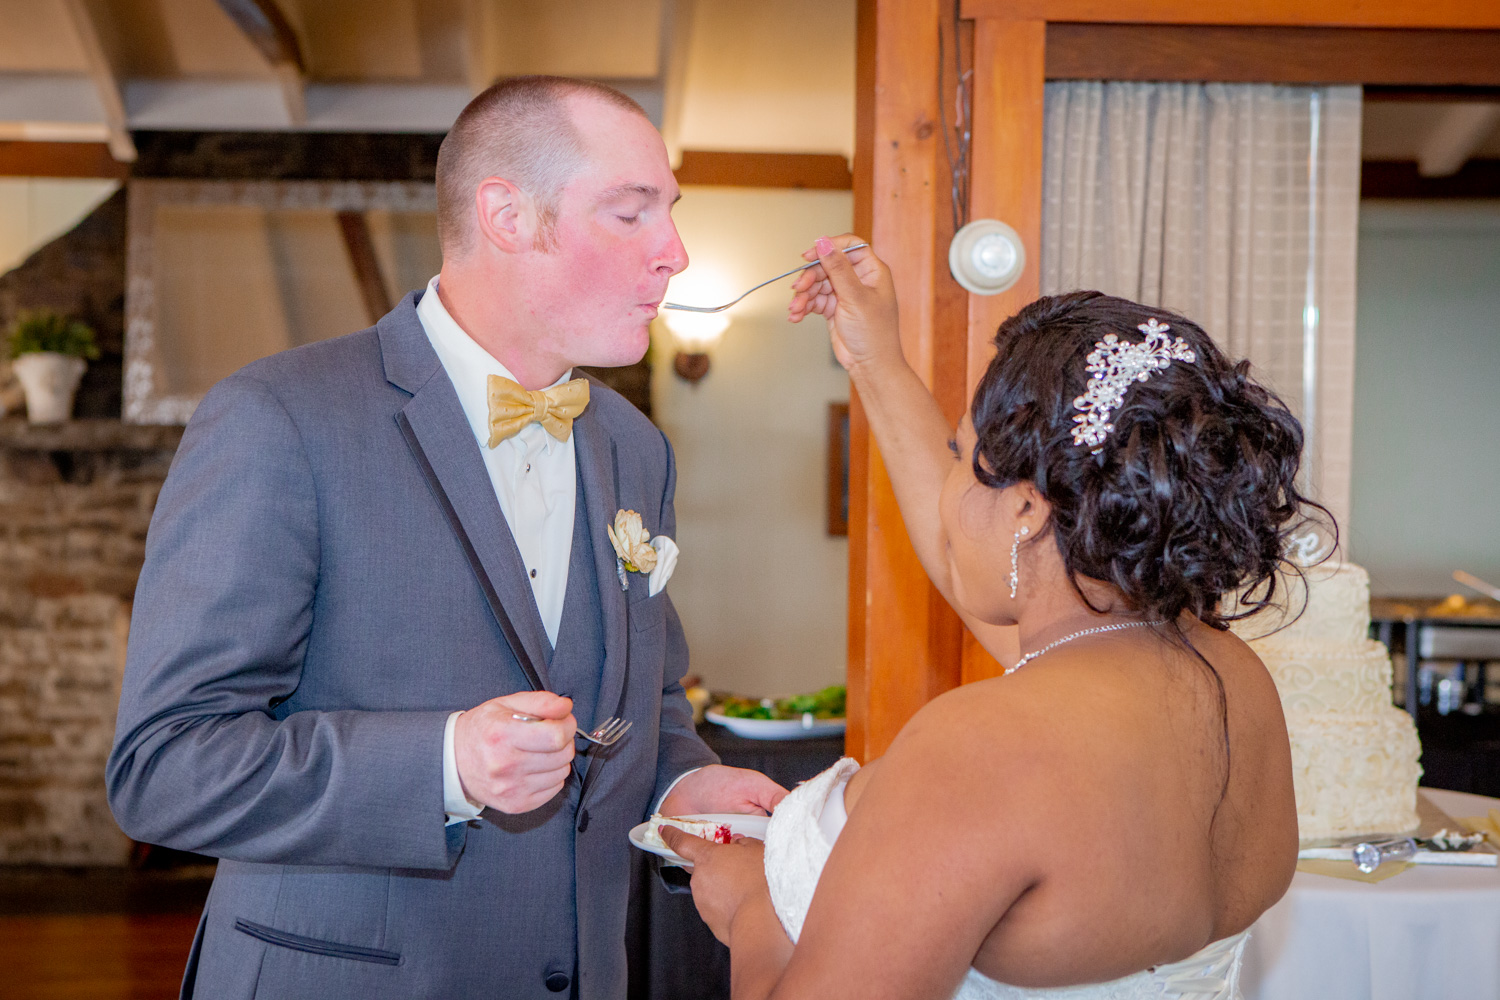 Photographer Joe Hy - Wedding at Hilltop Inn in Elmira, NY